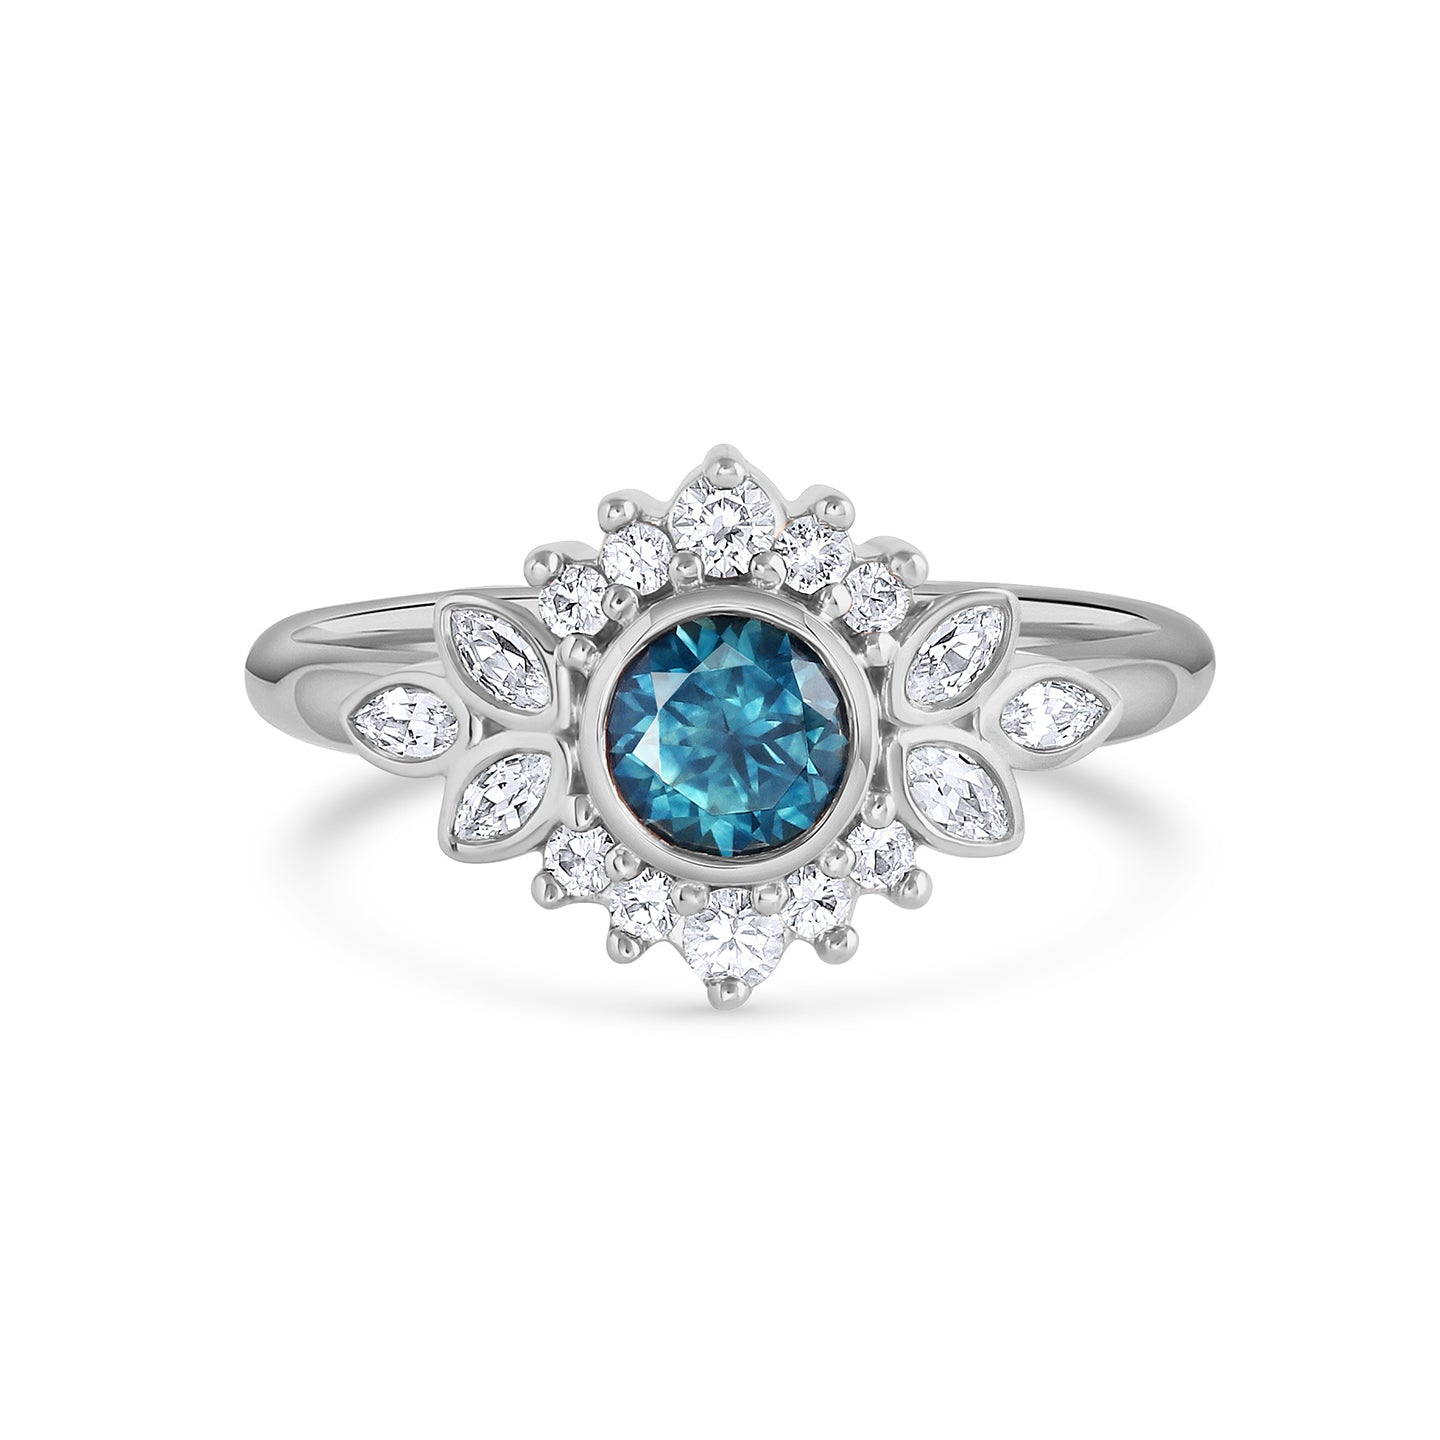 Dahlia | Teal Montana Sapphire Ring with Diamond Halo | White Gold, Platinum